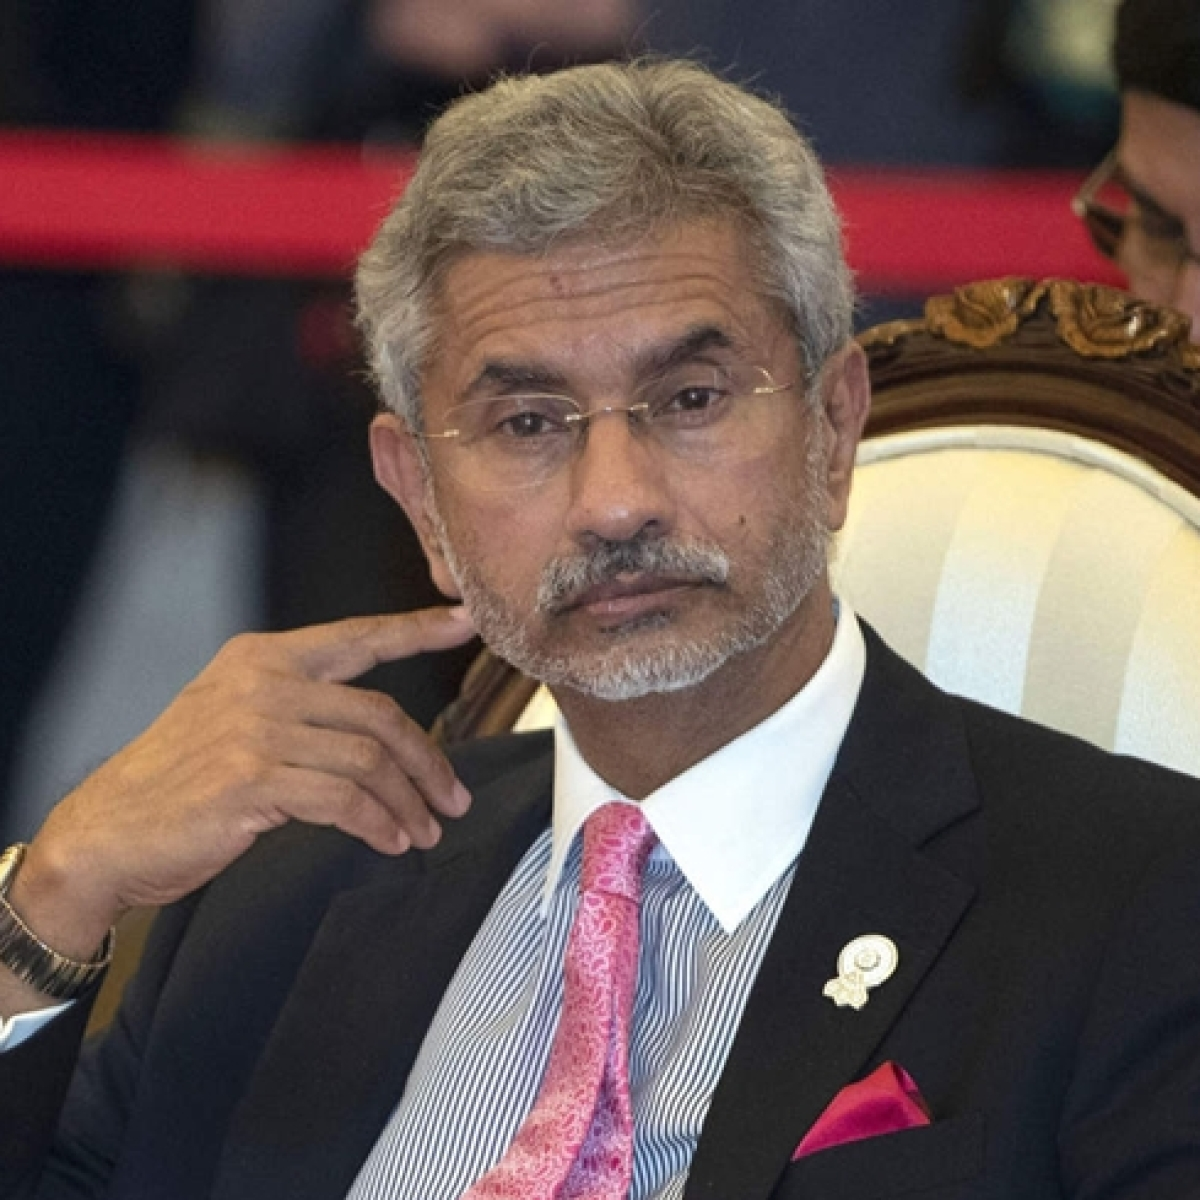 We would not like any state to tell us what to buy or not: Jaishankar on S-400 purchase from Russia